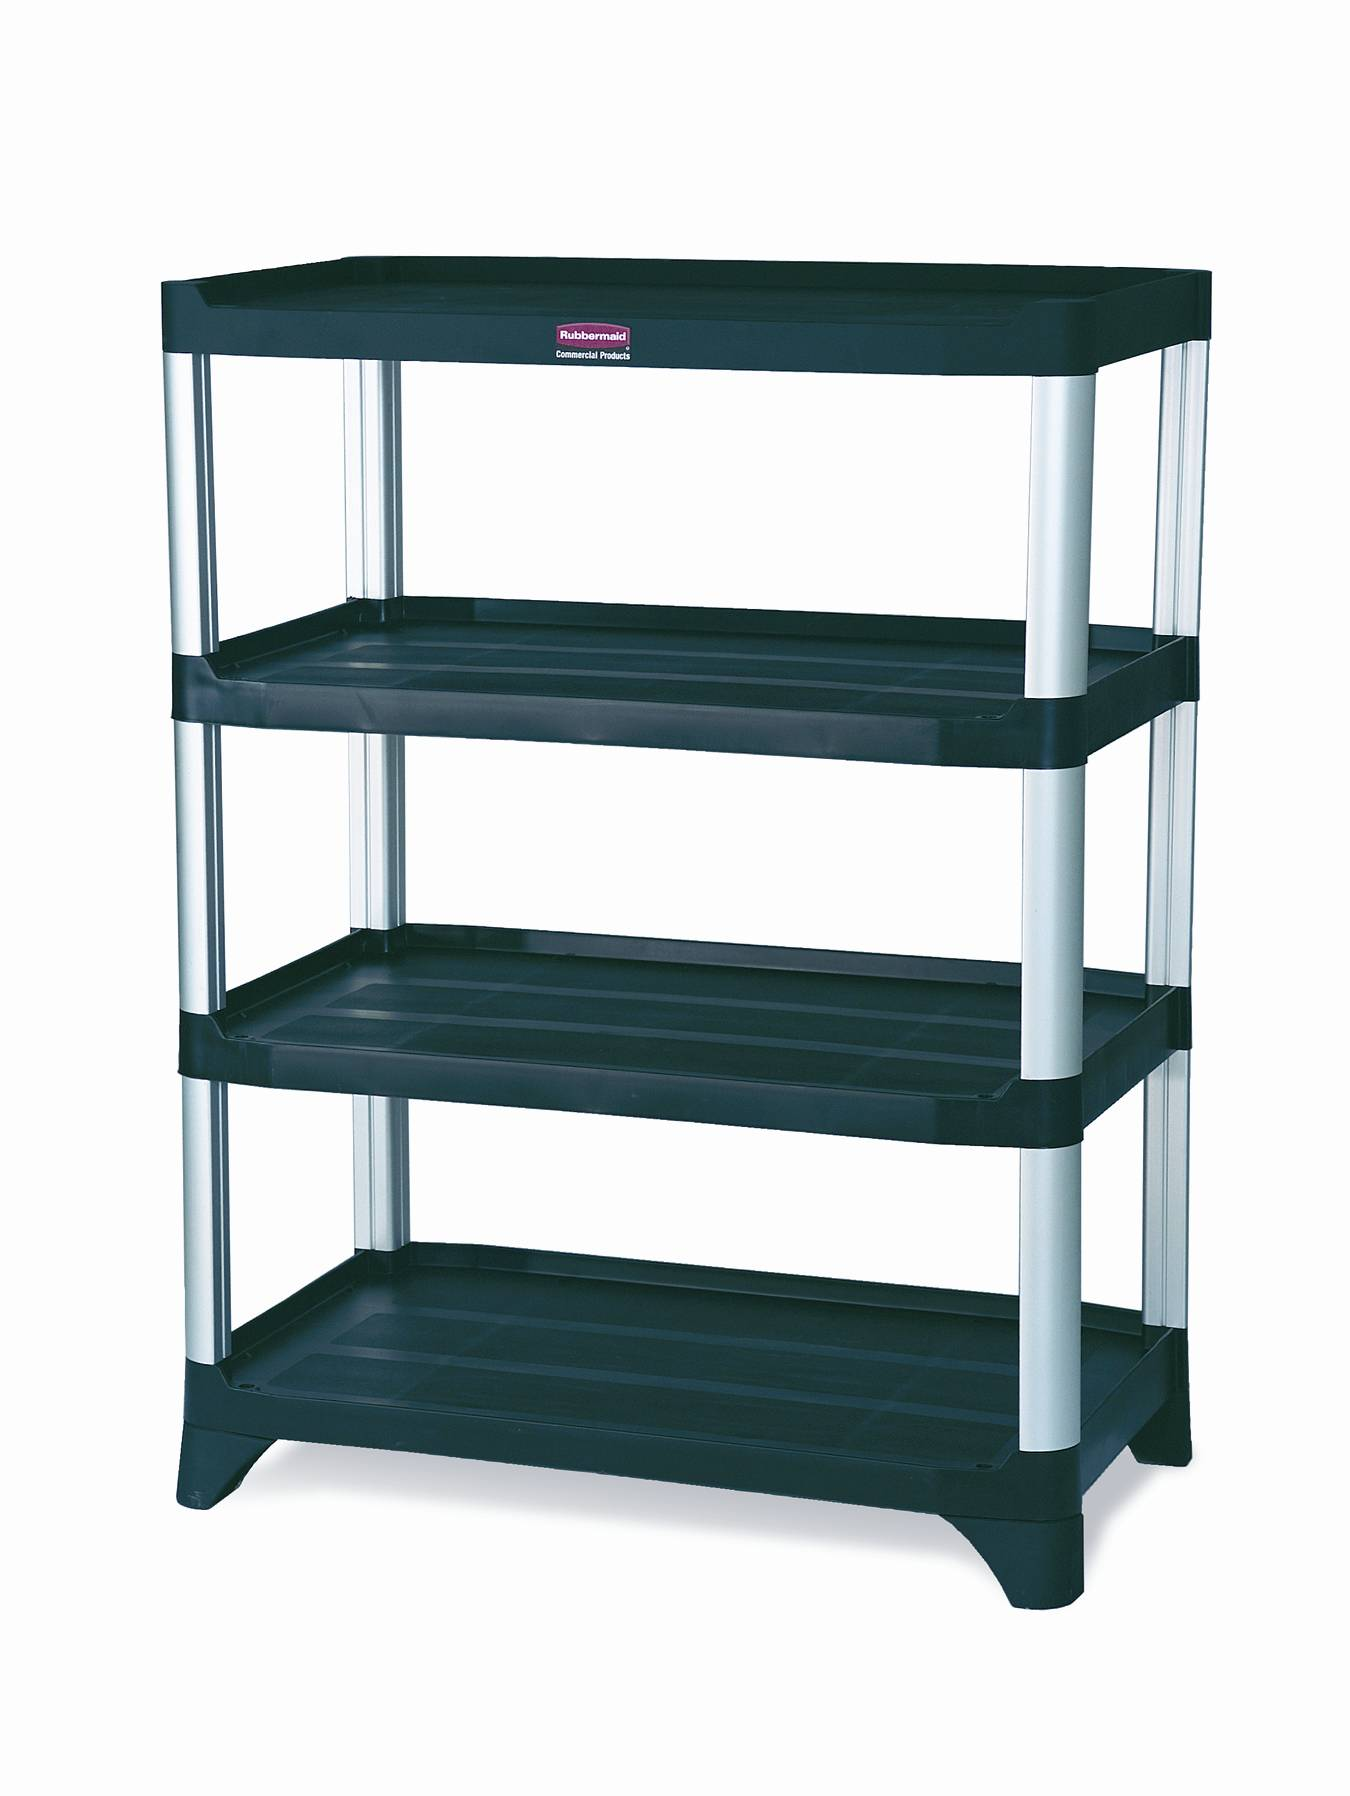 Rubbermaid 9t36 Storage Shelving 4 Shelf Unit